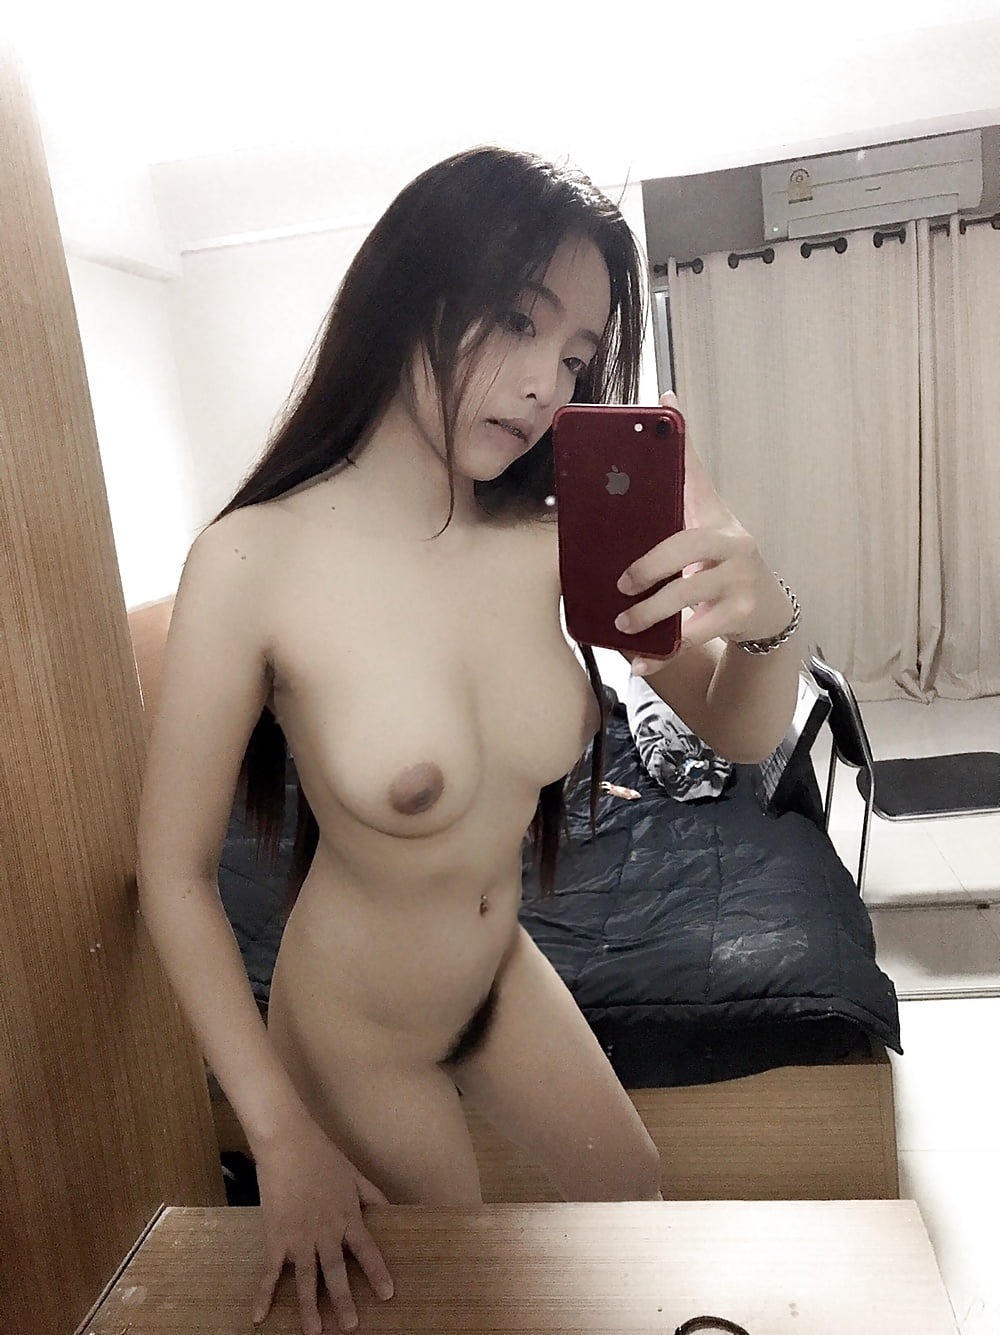 Thai naked coeds dating